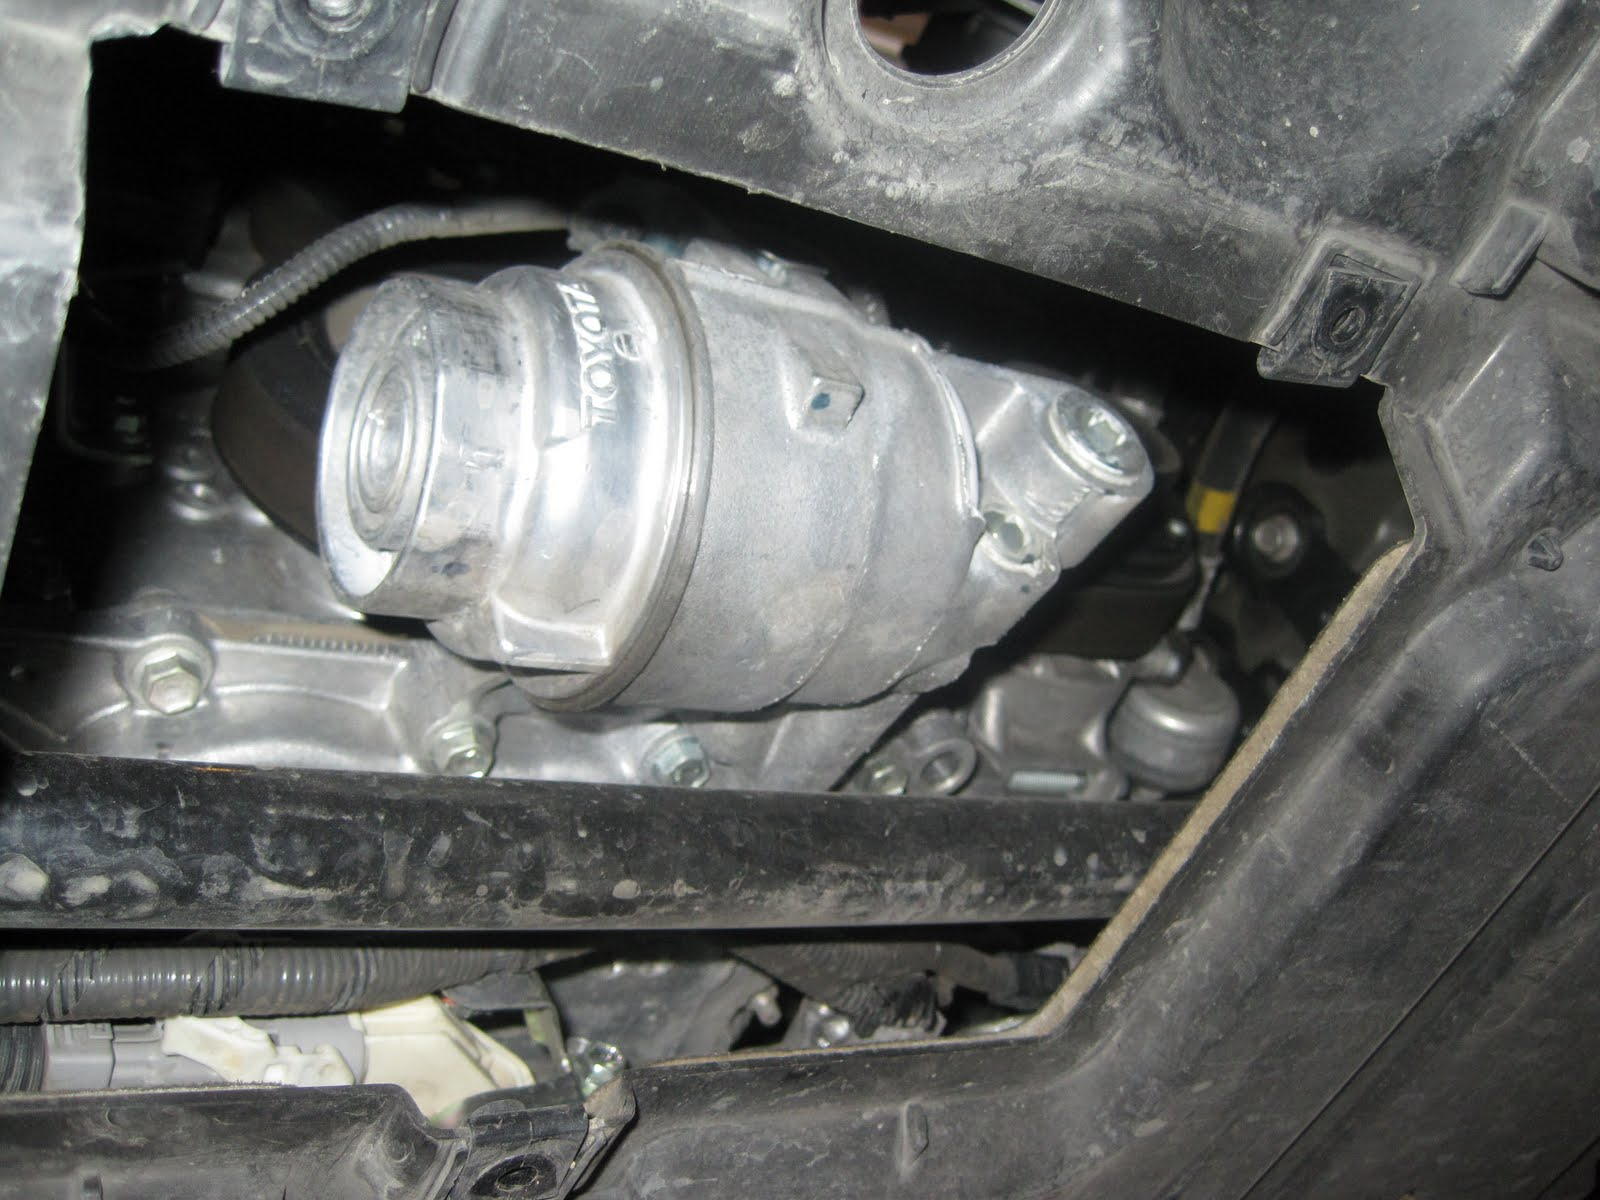 Andy Andy Blog: Lexus IS 250/350: How to Perform an Oil Change